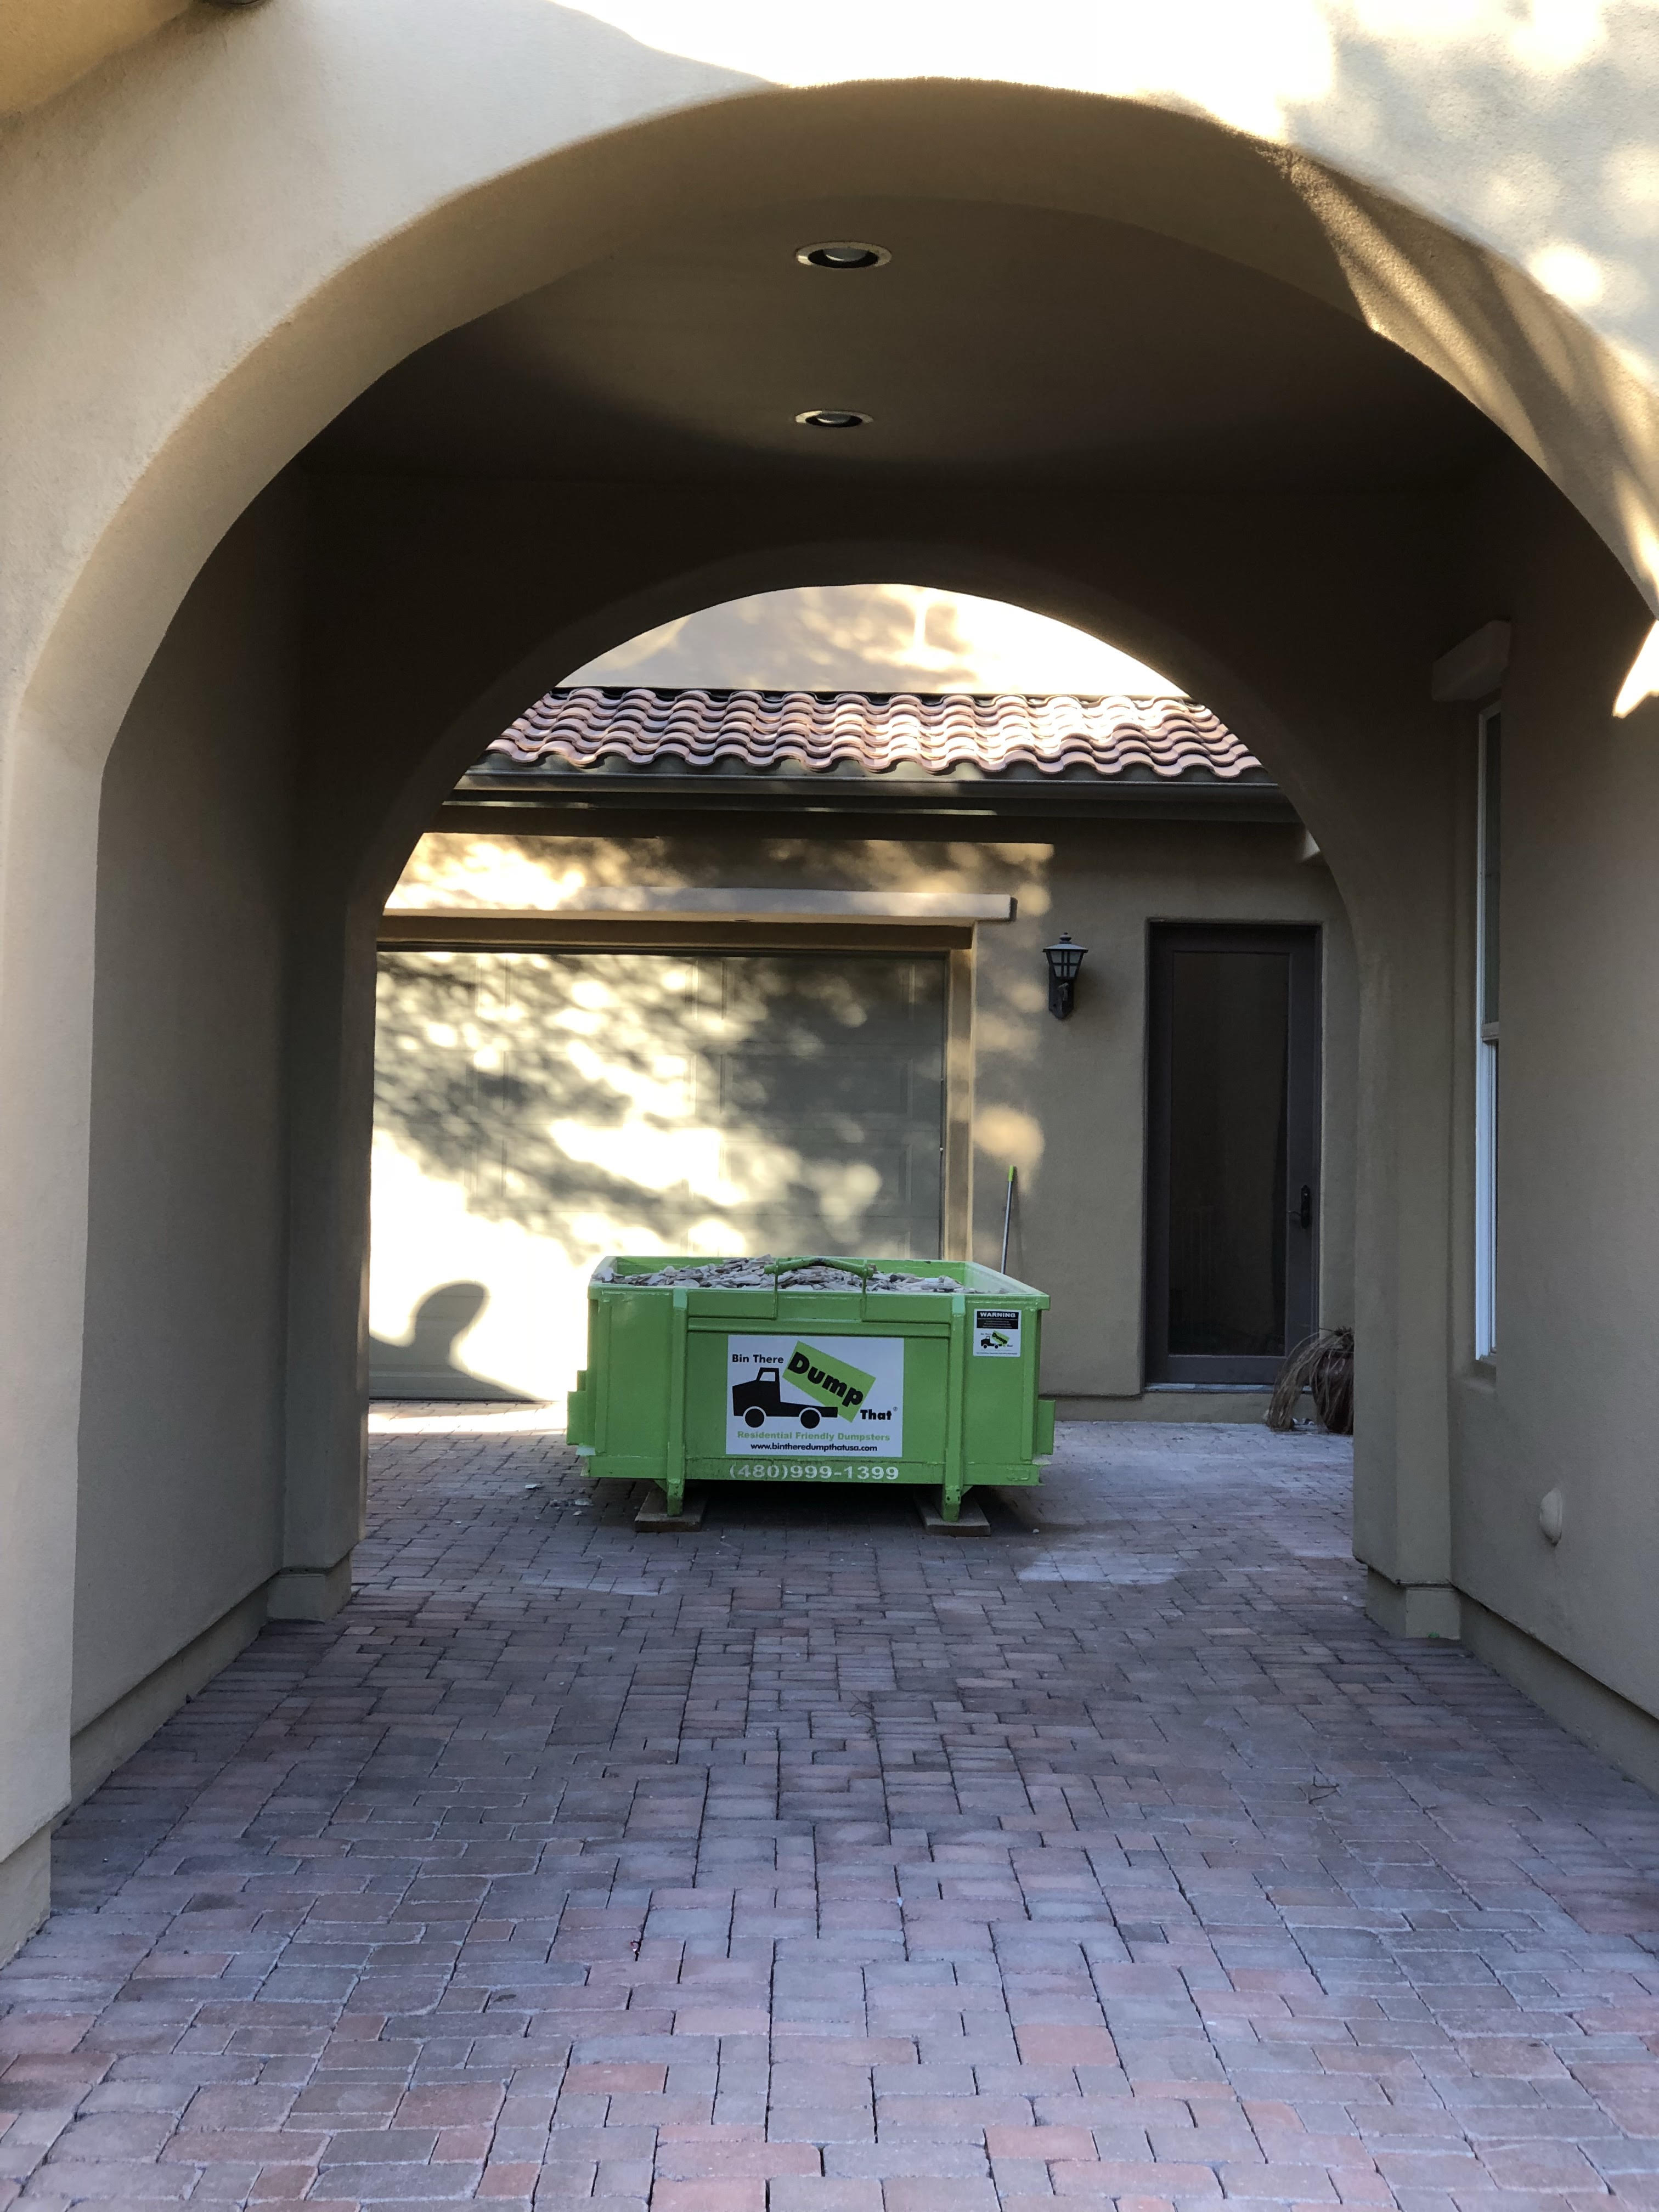 Dumpster Rental on Paver Stone Driveway